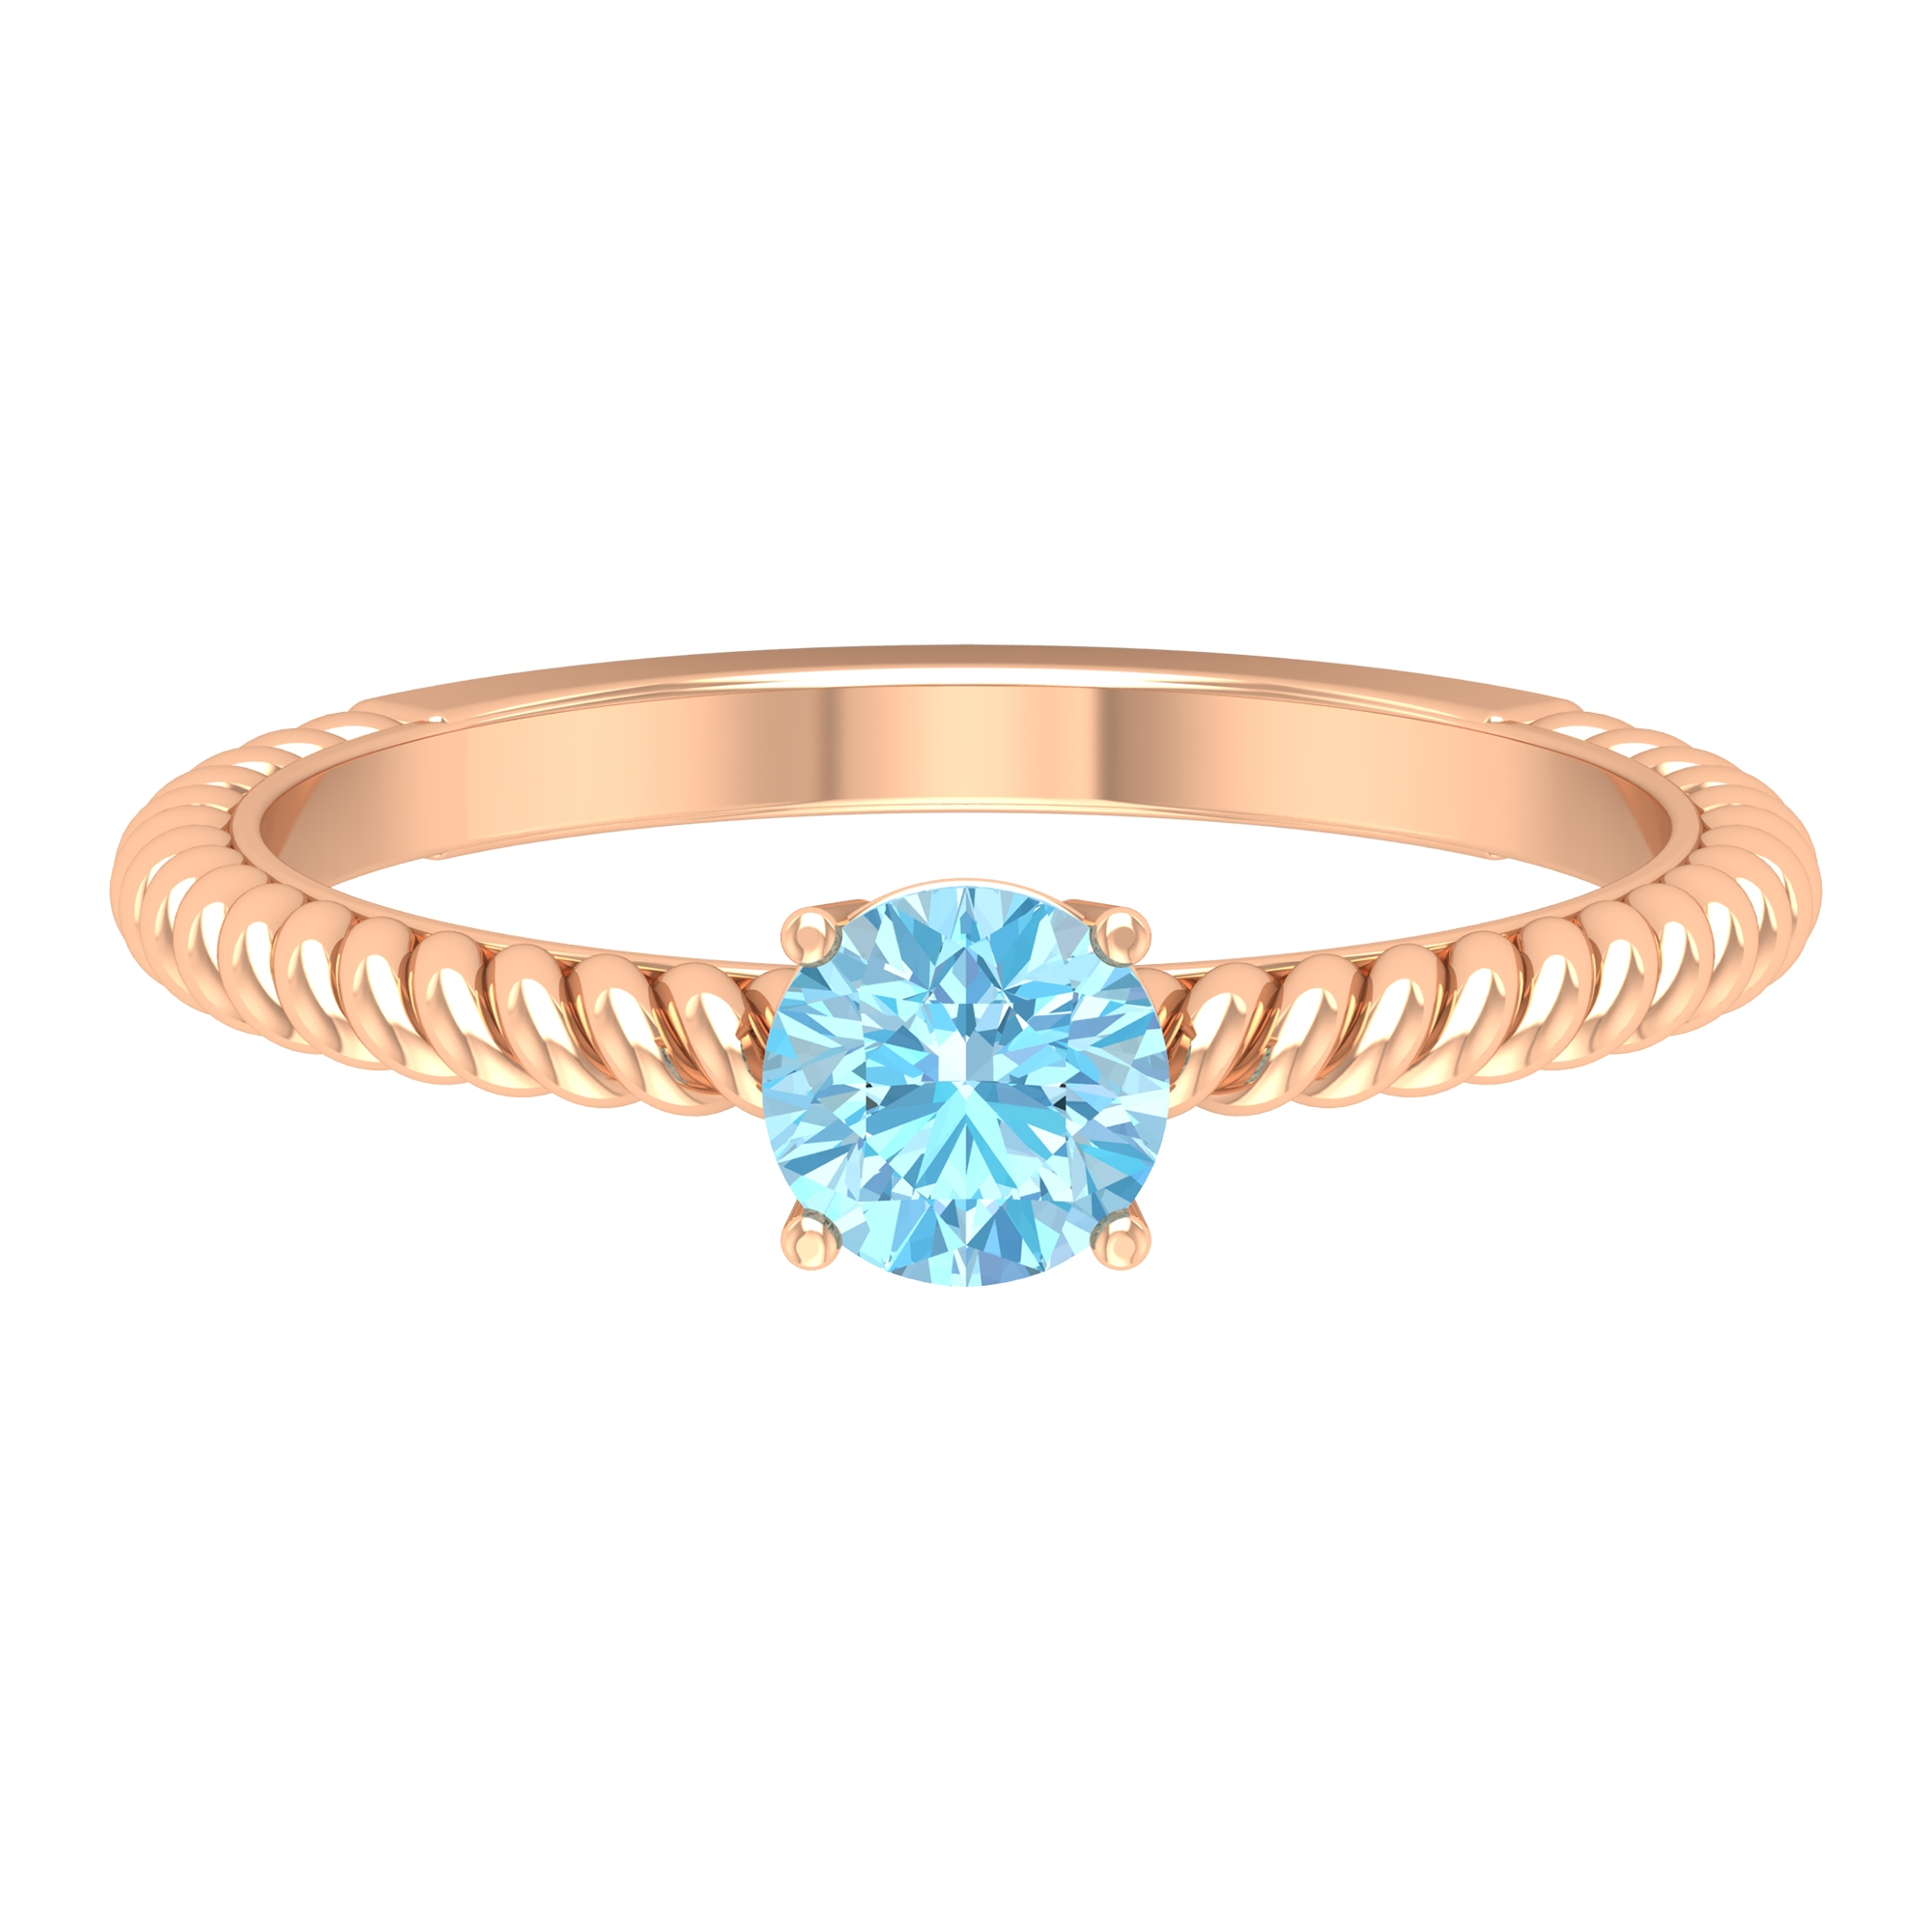 5 MM Four Prong Set Round Cut Aquamarine Solitaire Ring with Twisted Rope Shank